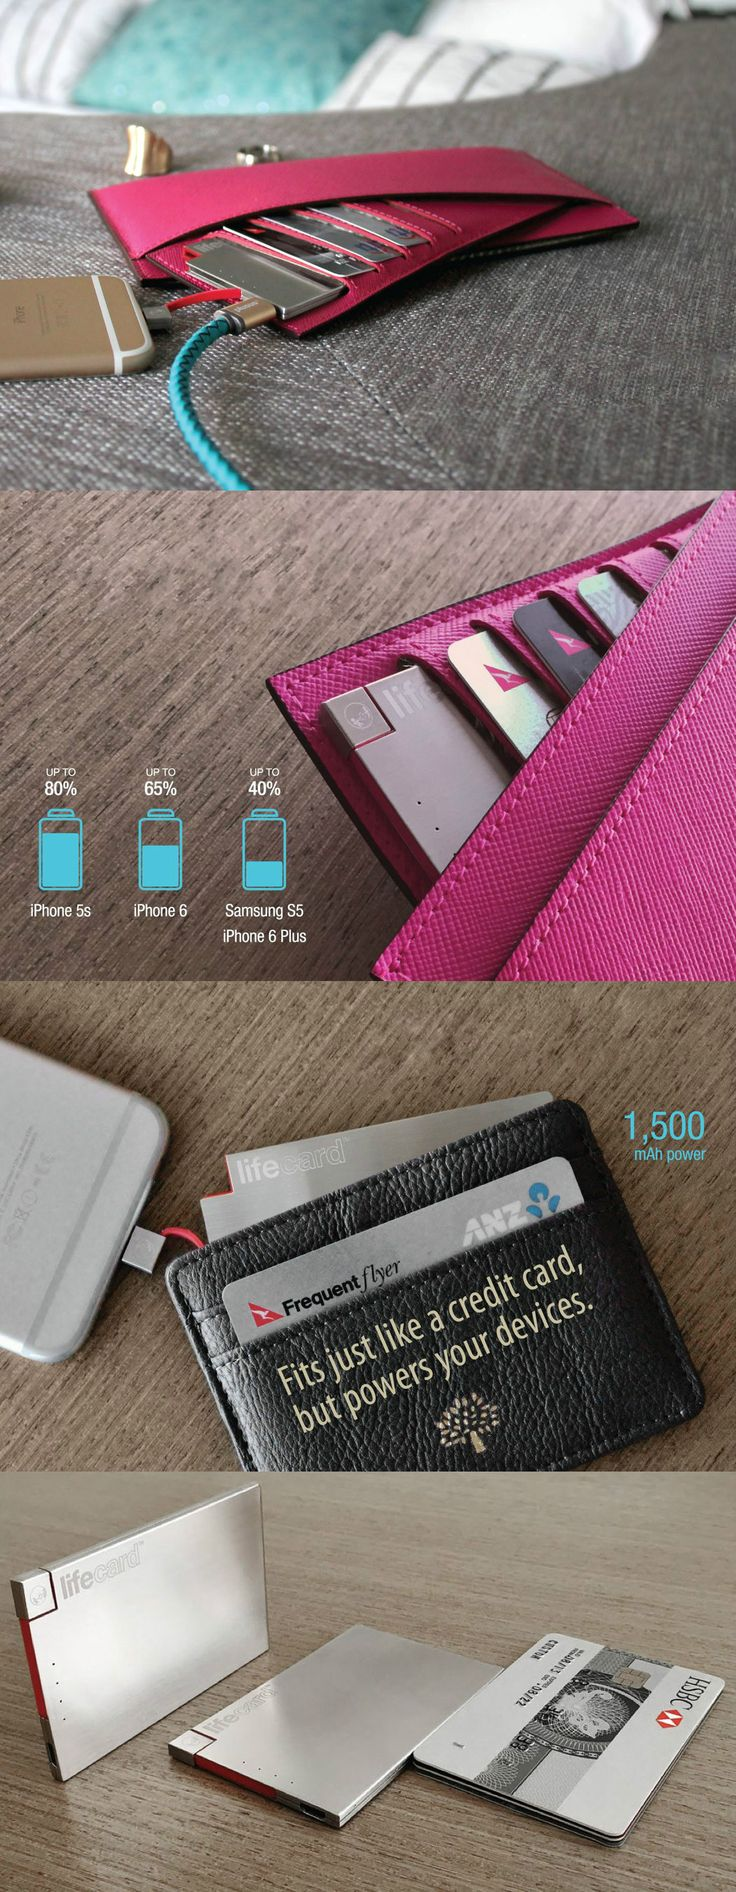 THIS CARD WORKS FOR A DIFFERENT BANK | YANKO DESIGN